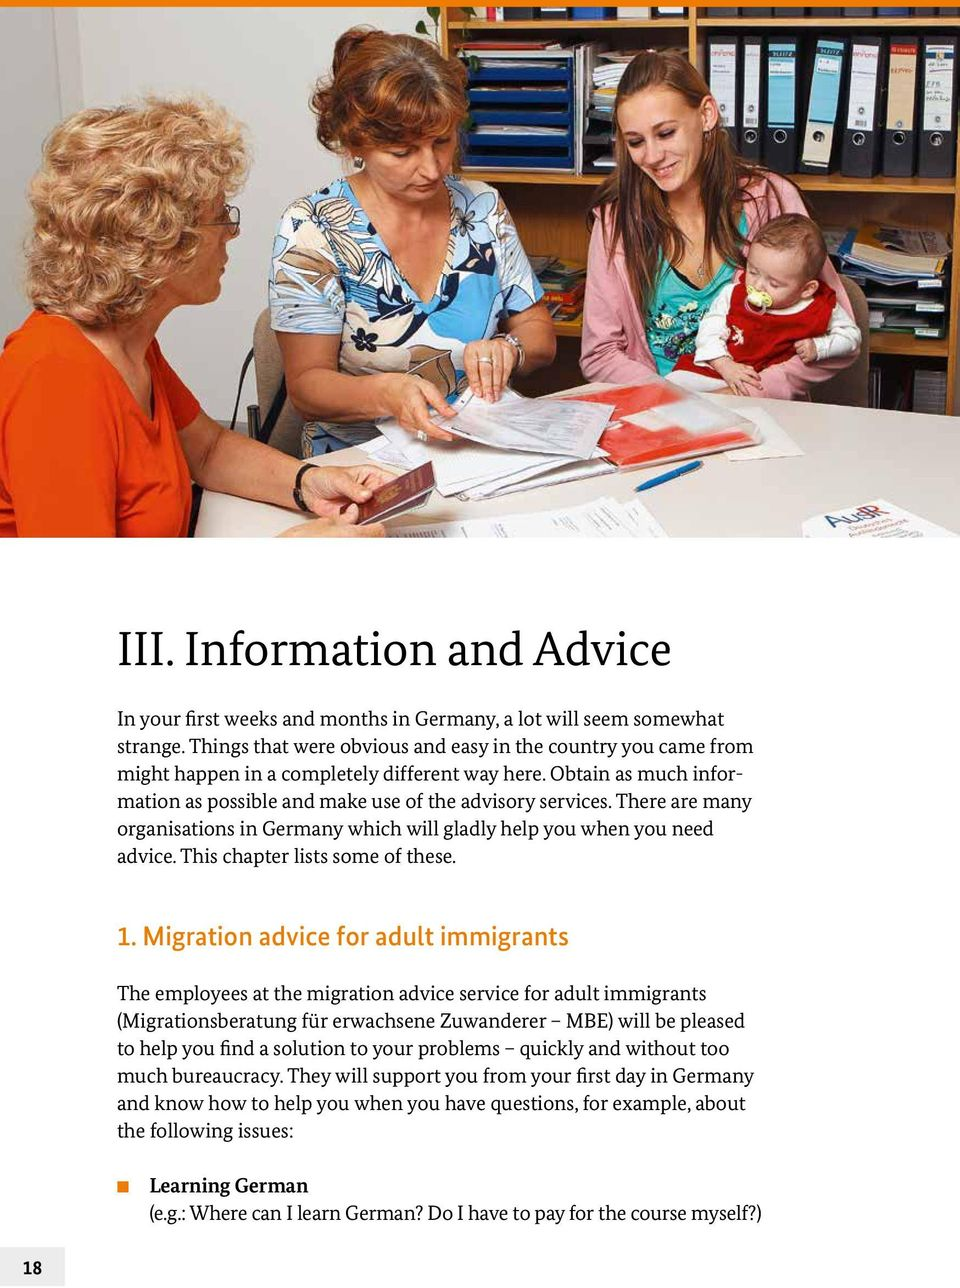 There are many organisations in Germany which will gladly help you when you need advice. This chapter lists some of these. 1.